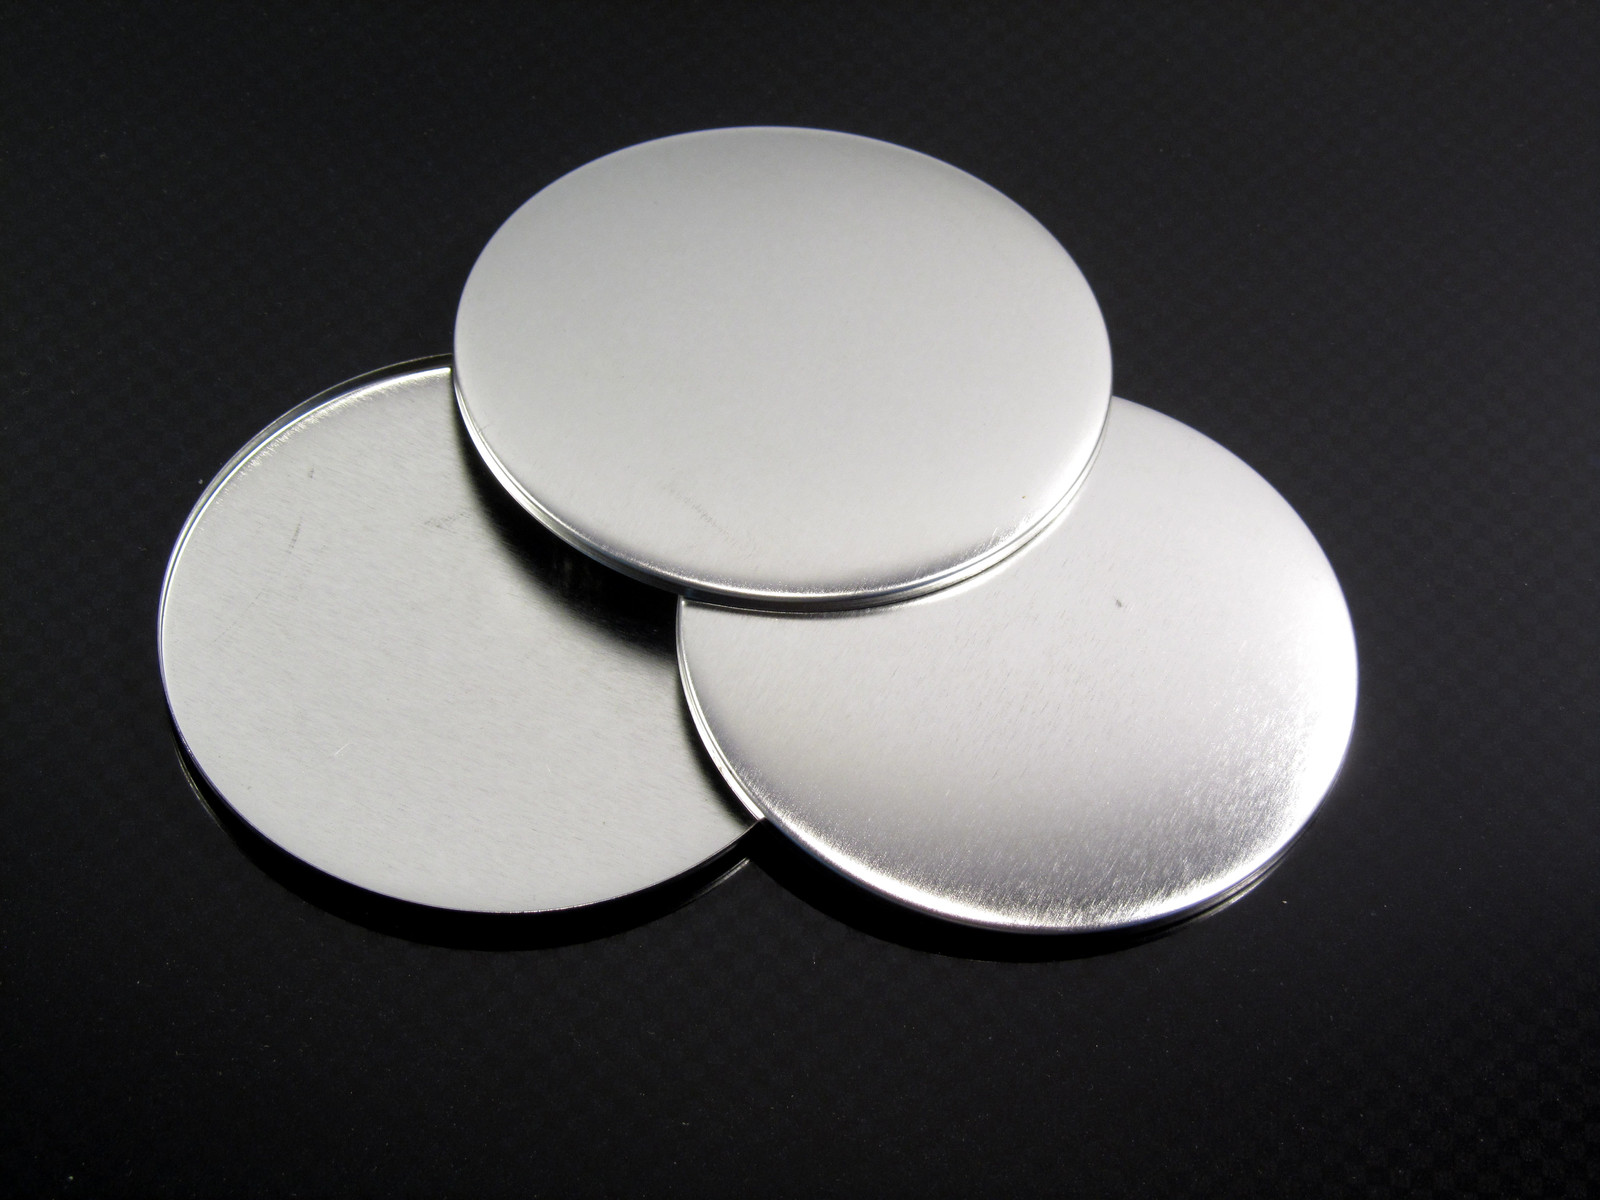 75 mm badge domes, otherwise known as shells, ideal if you need some extra